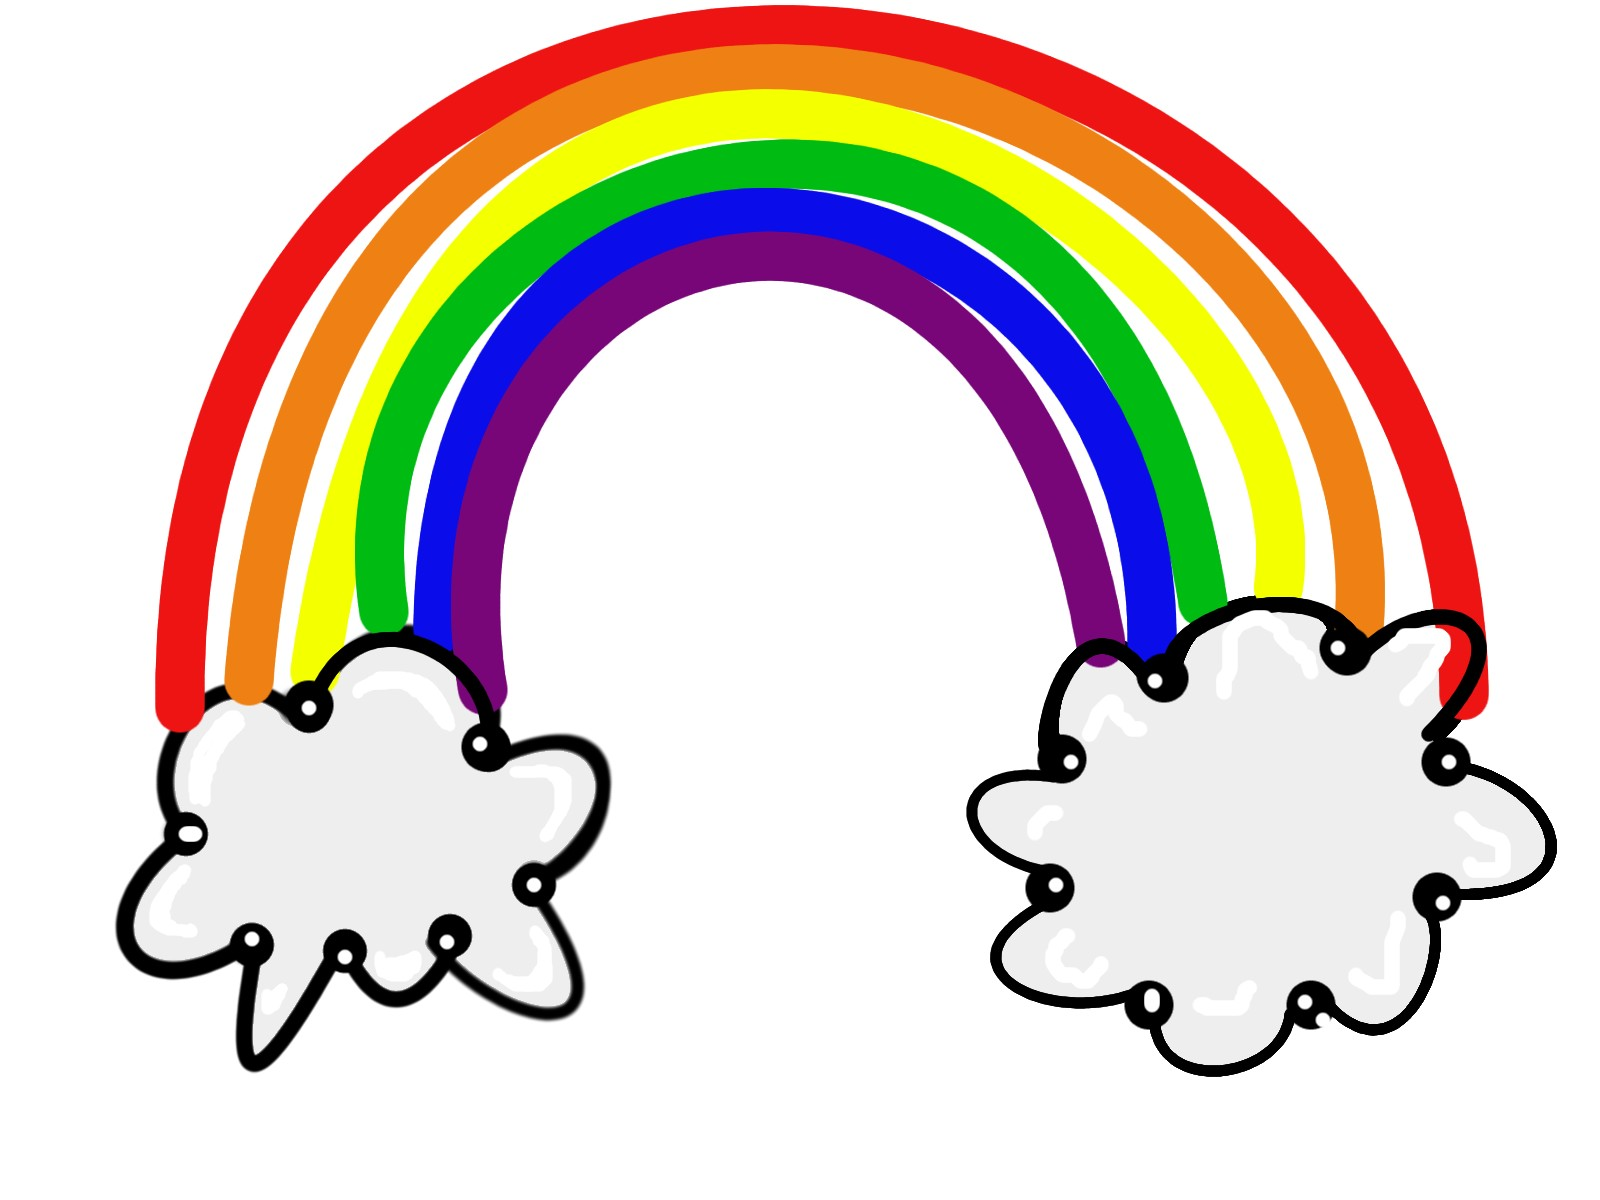 Free rainbow clip art pictures 3